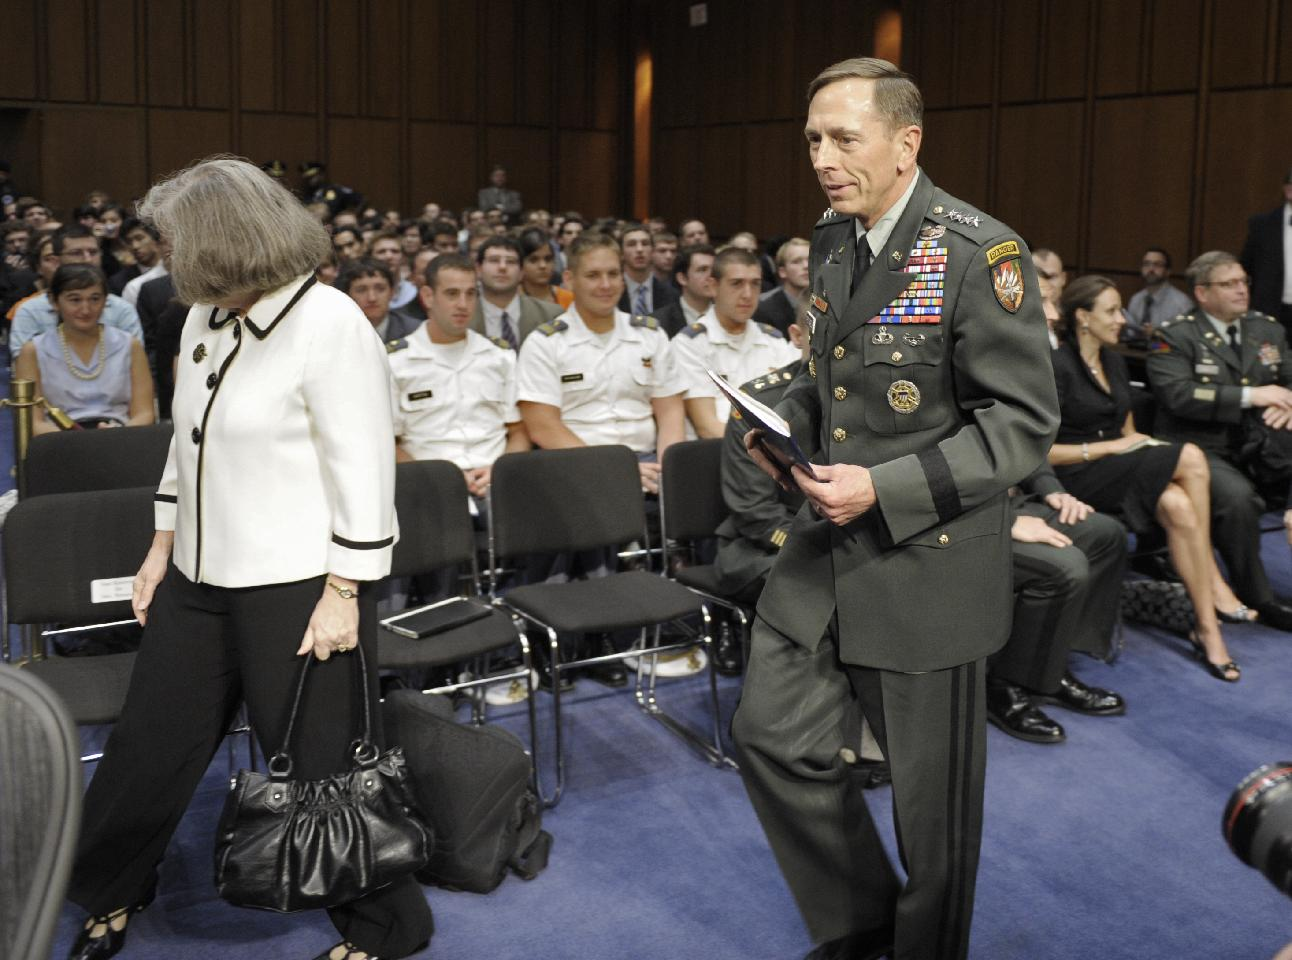 Holly Petraeus and Gen. David Petraeus walk past a seated Paula Broadwell (rear right) at his confirmation hearing as CIA director in June 2011. (Cliff Owen/AP)